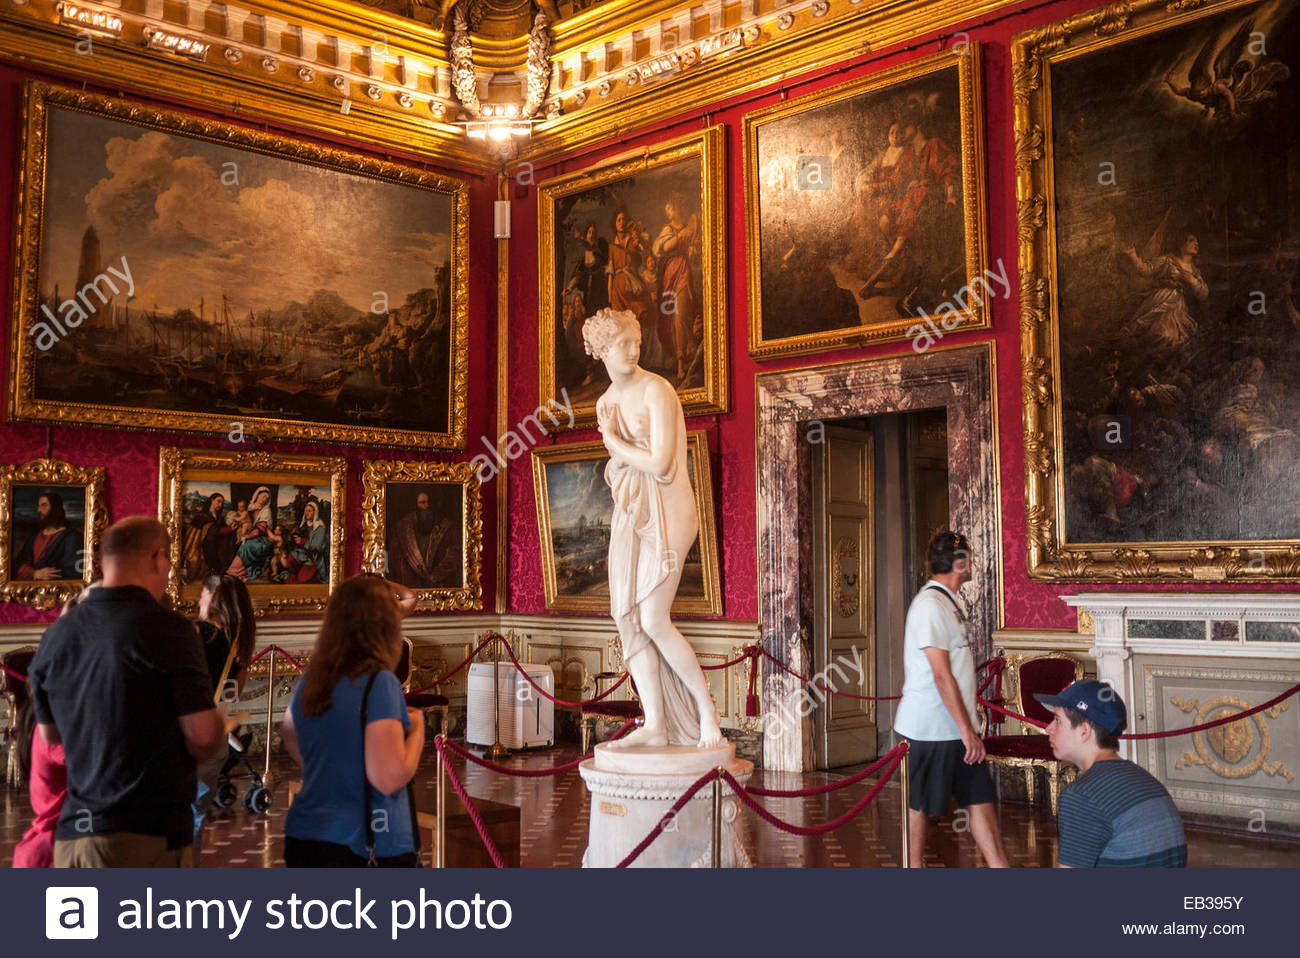 Tourists look at art in the Sala de Venue in the Palazzo Pitti. - Stock Image